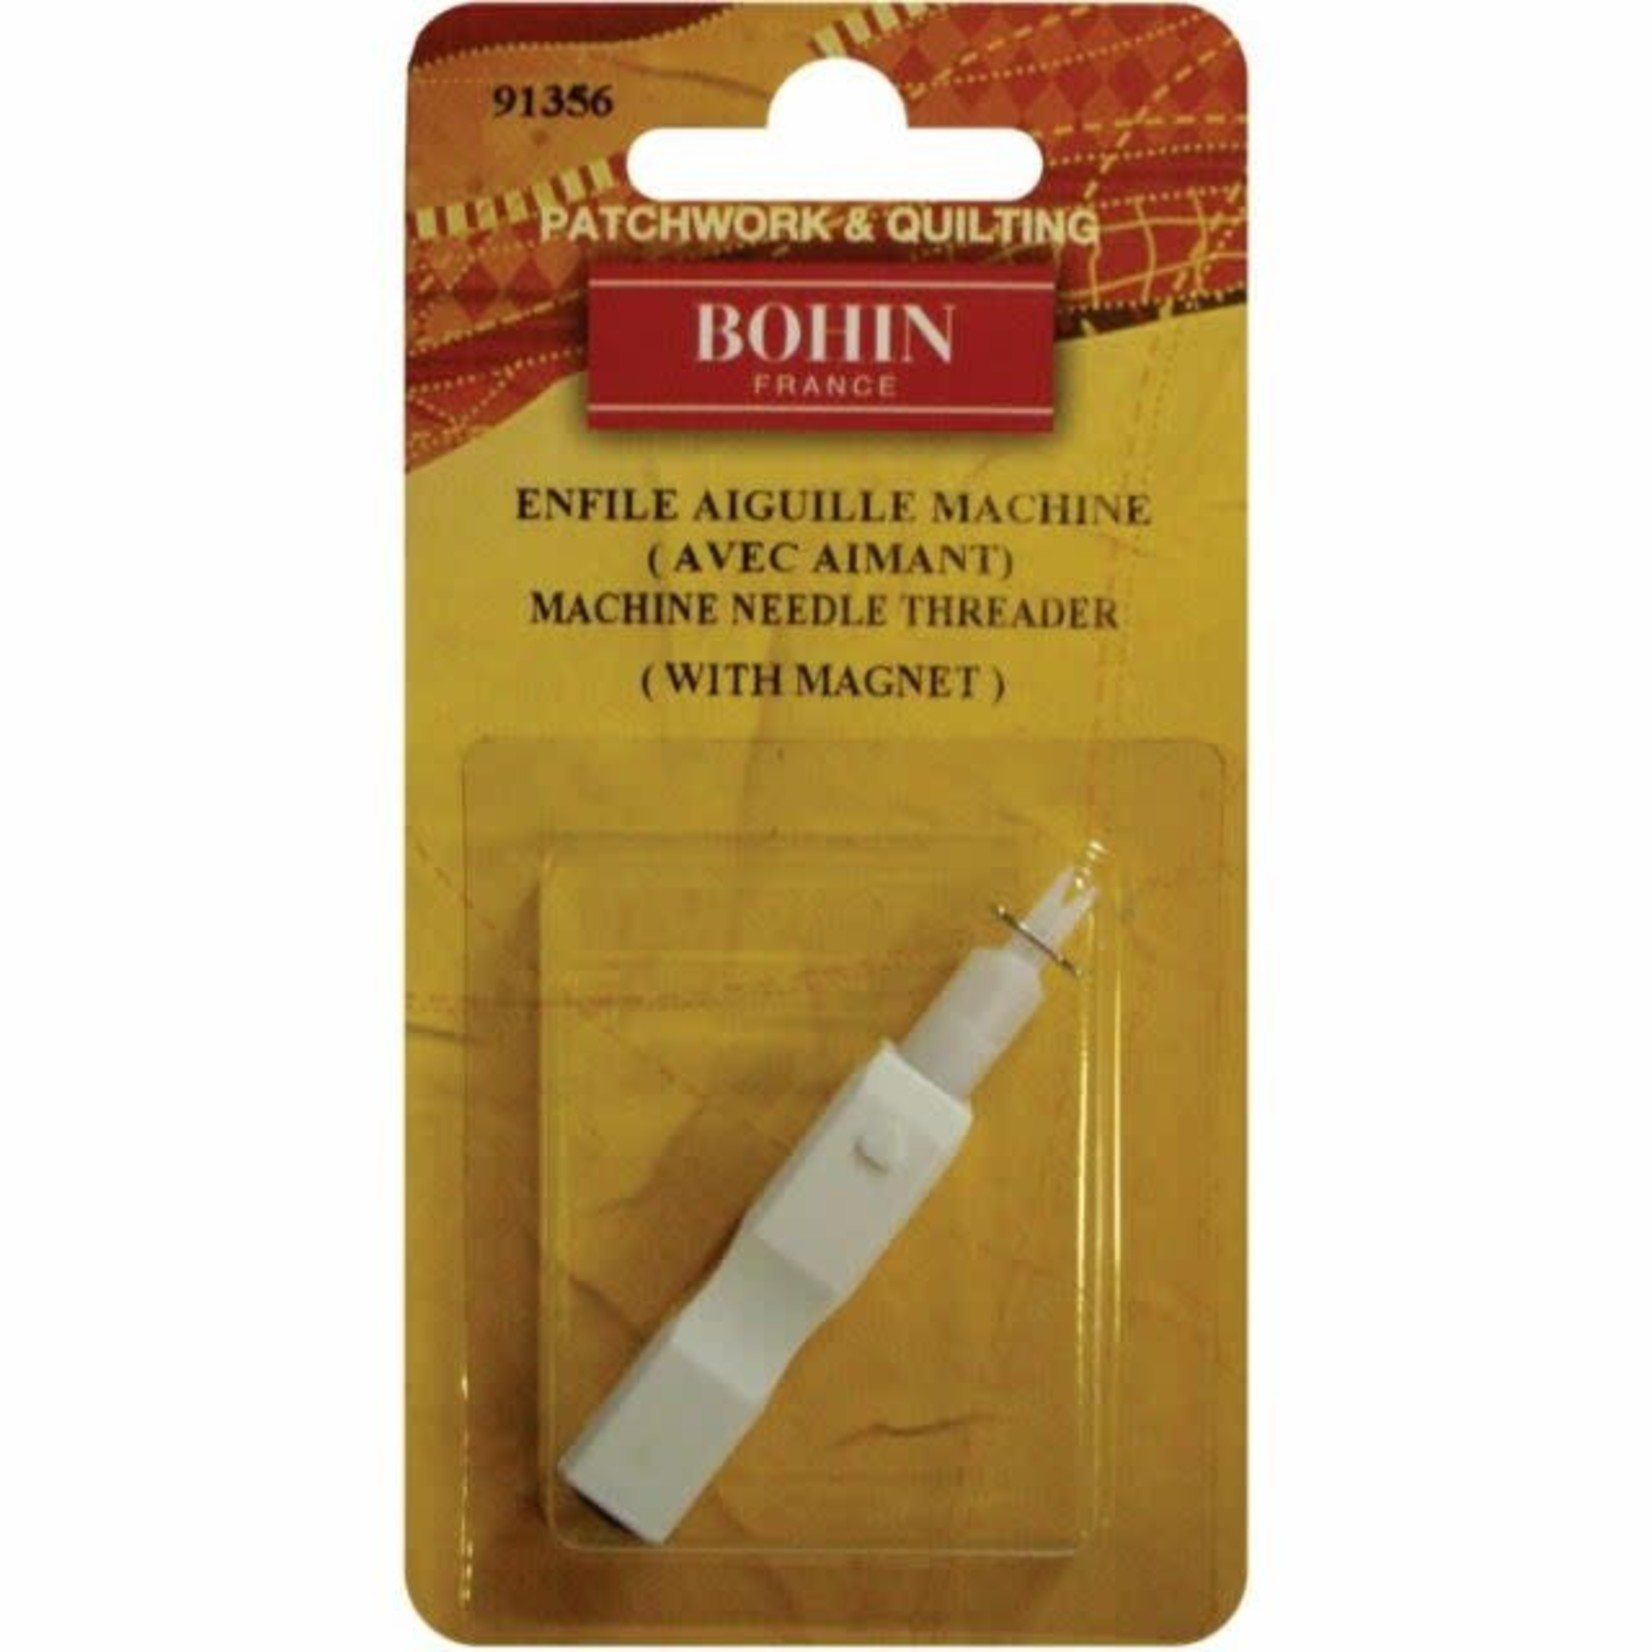 BOHIN MACHINE NEEDLE THREADER